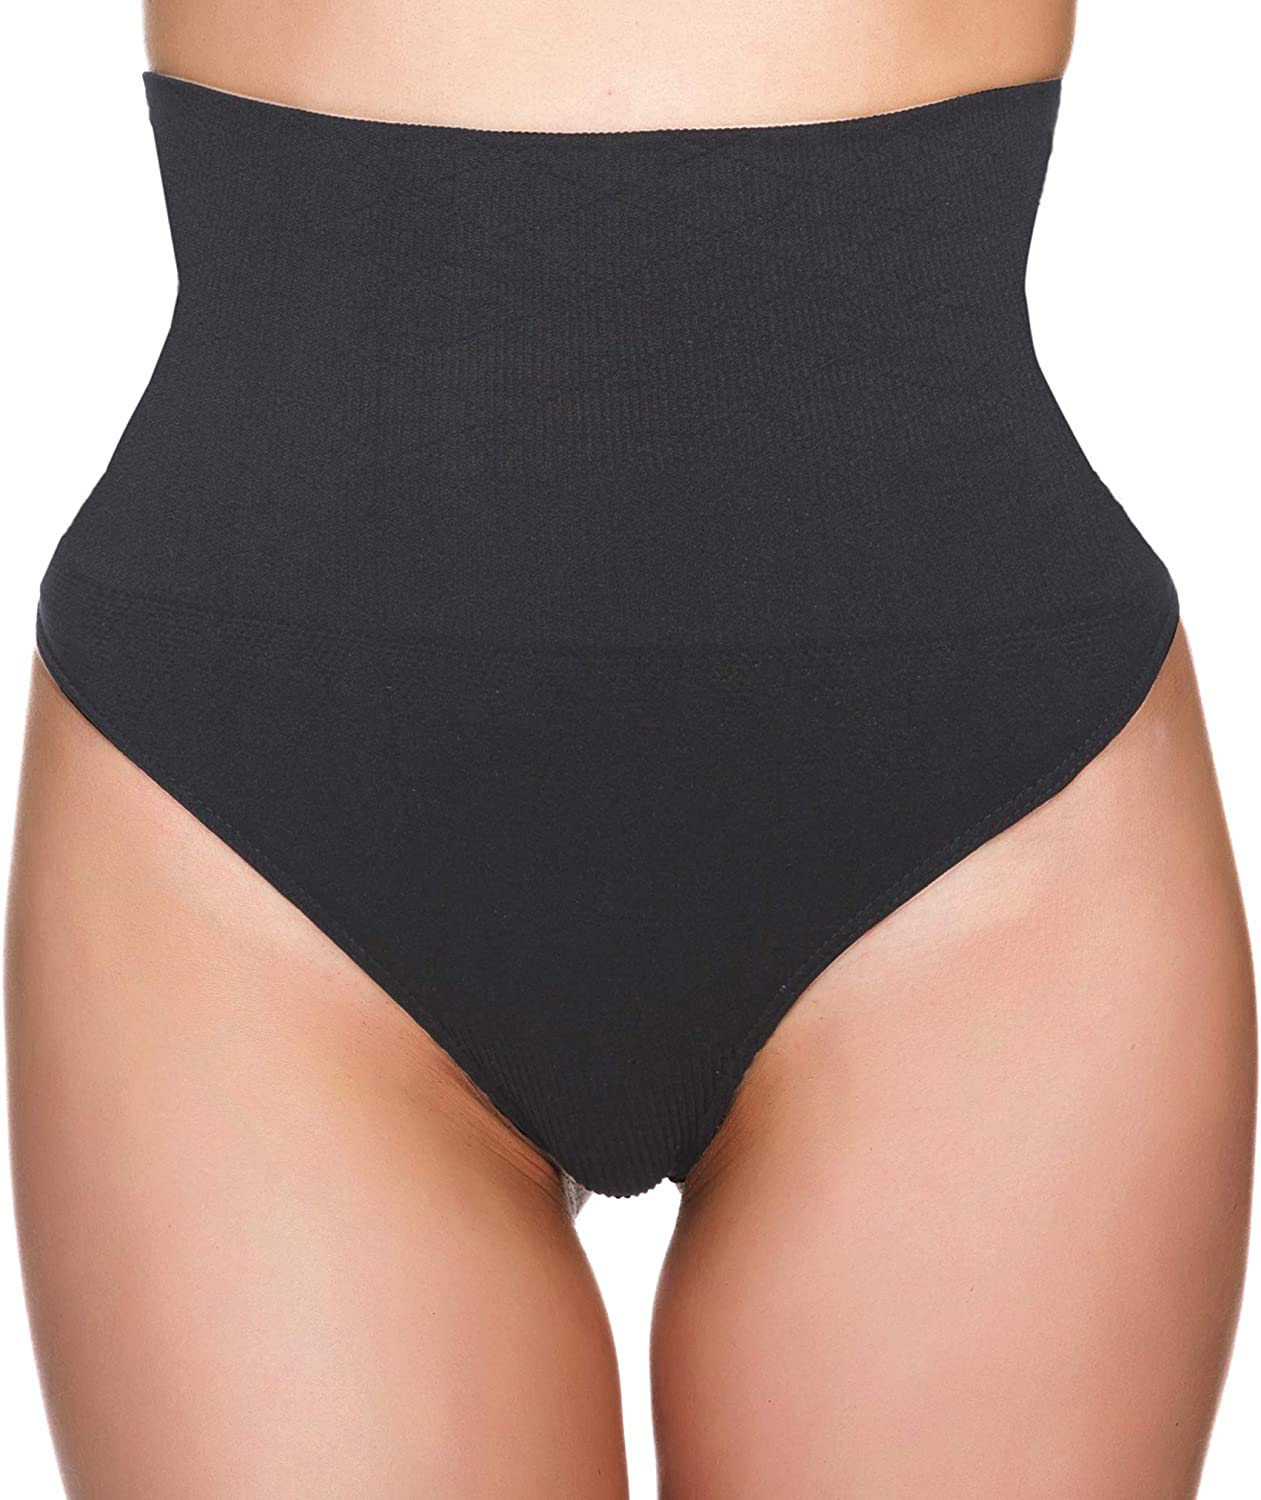 CeesyJuly Womens Tummy Control Panty Slimmer Seamless Middle Waist Shapewear Thong Shaper